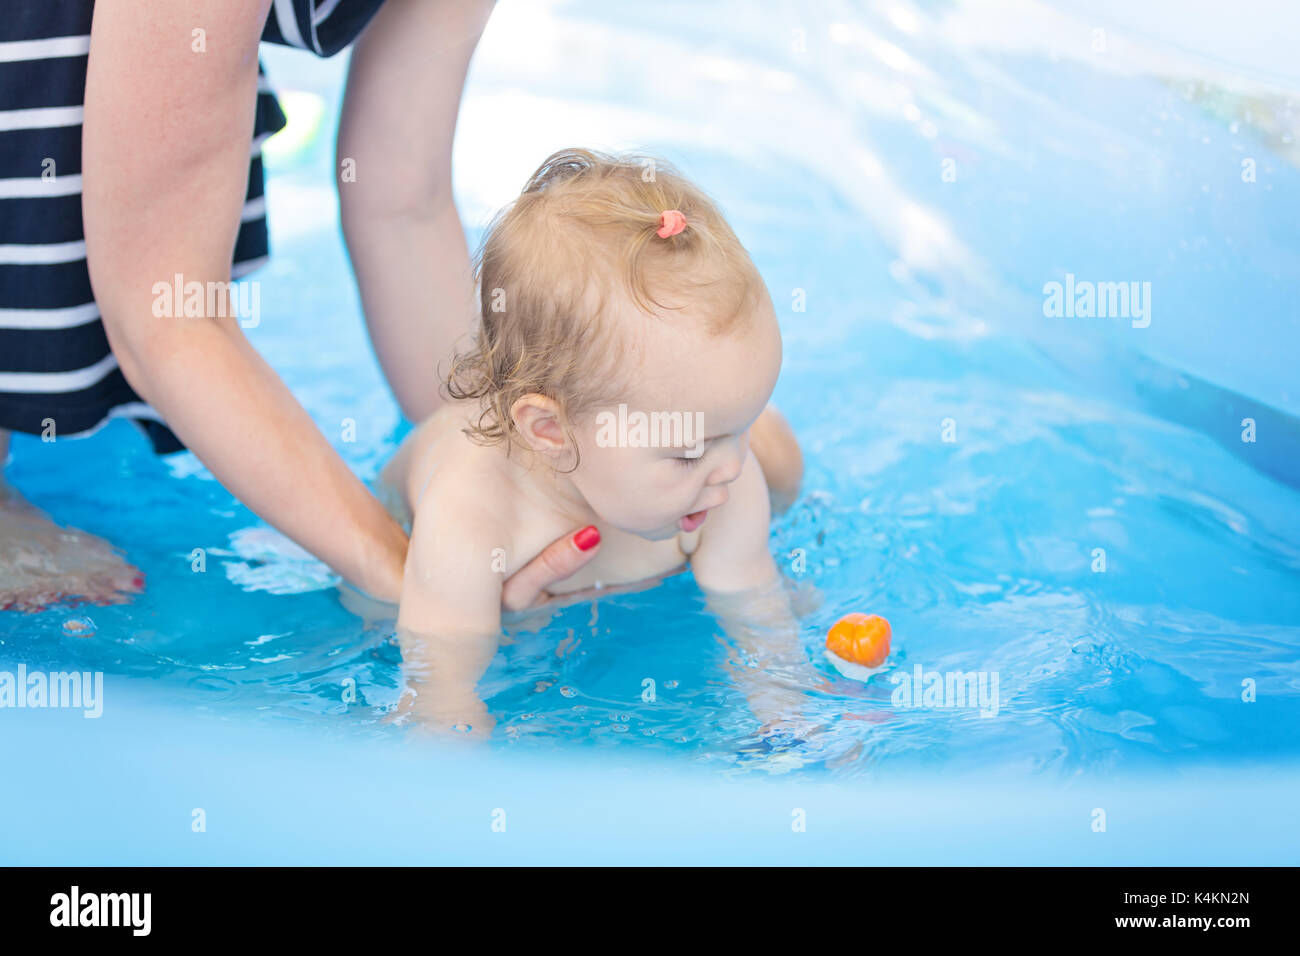 Sixteen months old baby girl playing in the plastic pool with toys - mother standing next to her, keeping an eye Stock Photo